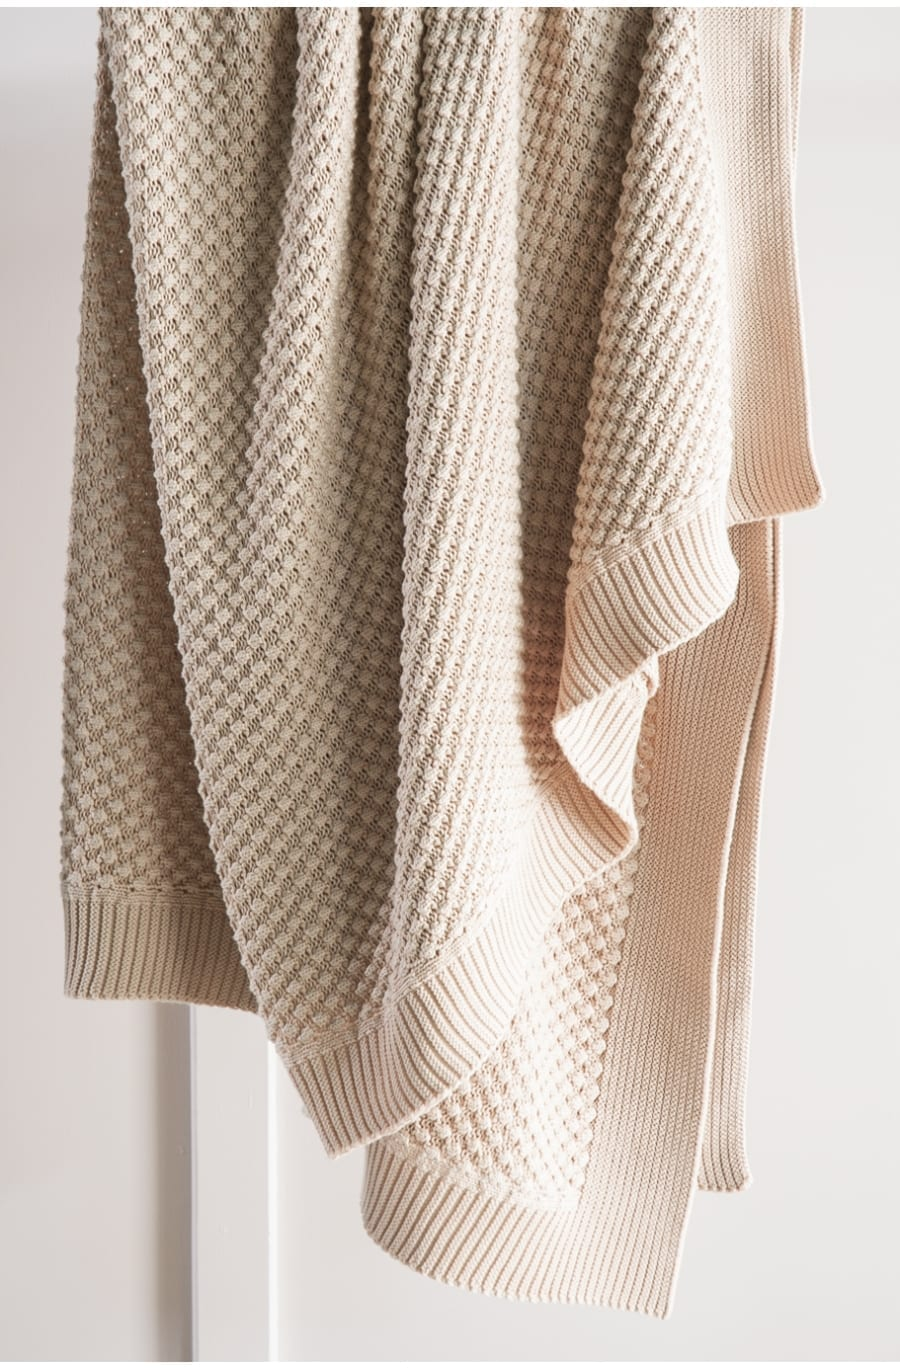 Bianca Lorenne filato knitted throw vintage rose available at McKenzie & Willis